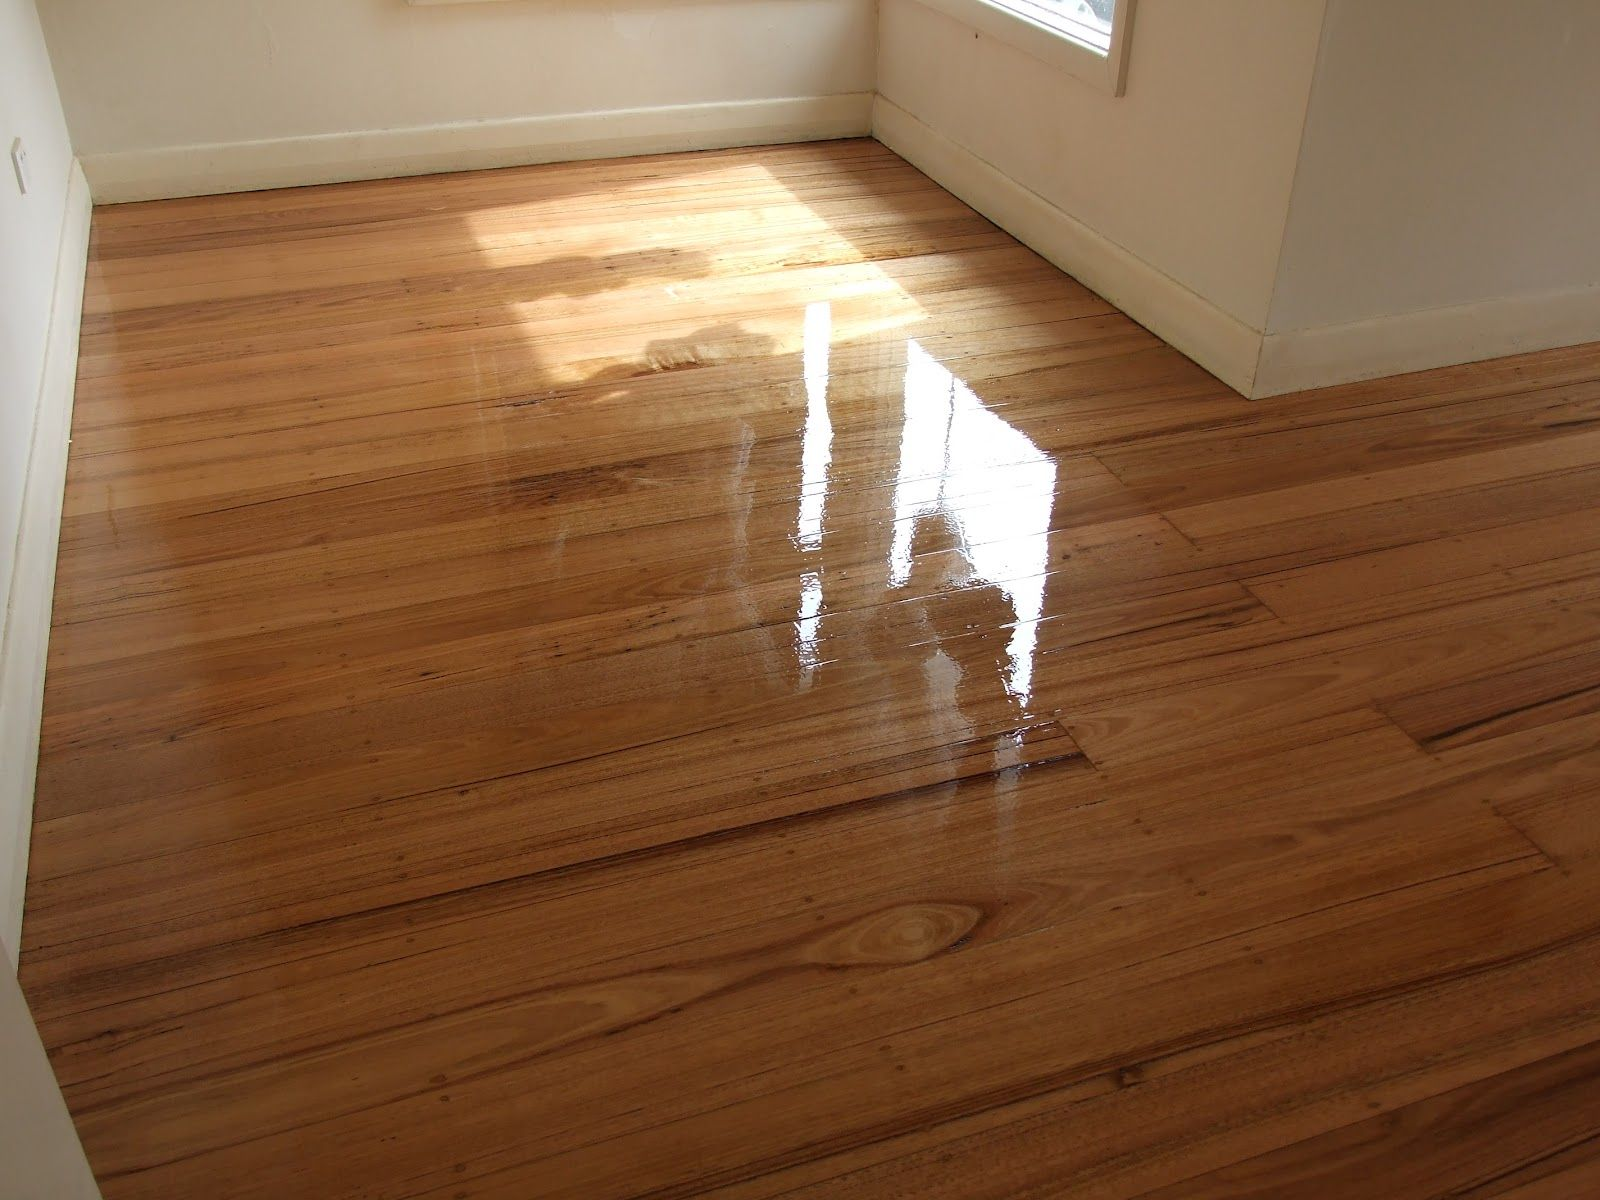 The Whole Matter Though Lies Between Presence And Absence Of Sheen Sheen Deals With The Reflective Na Wood Floor Finishes Installing Hardwood Floors Flooring